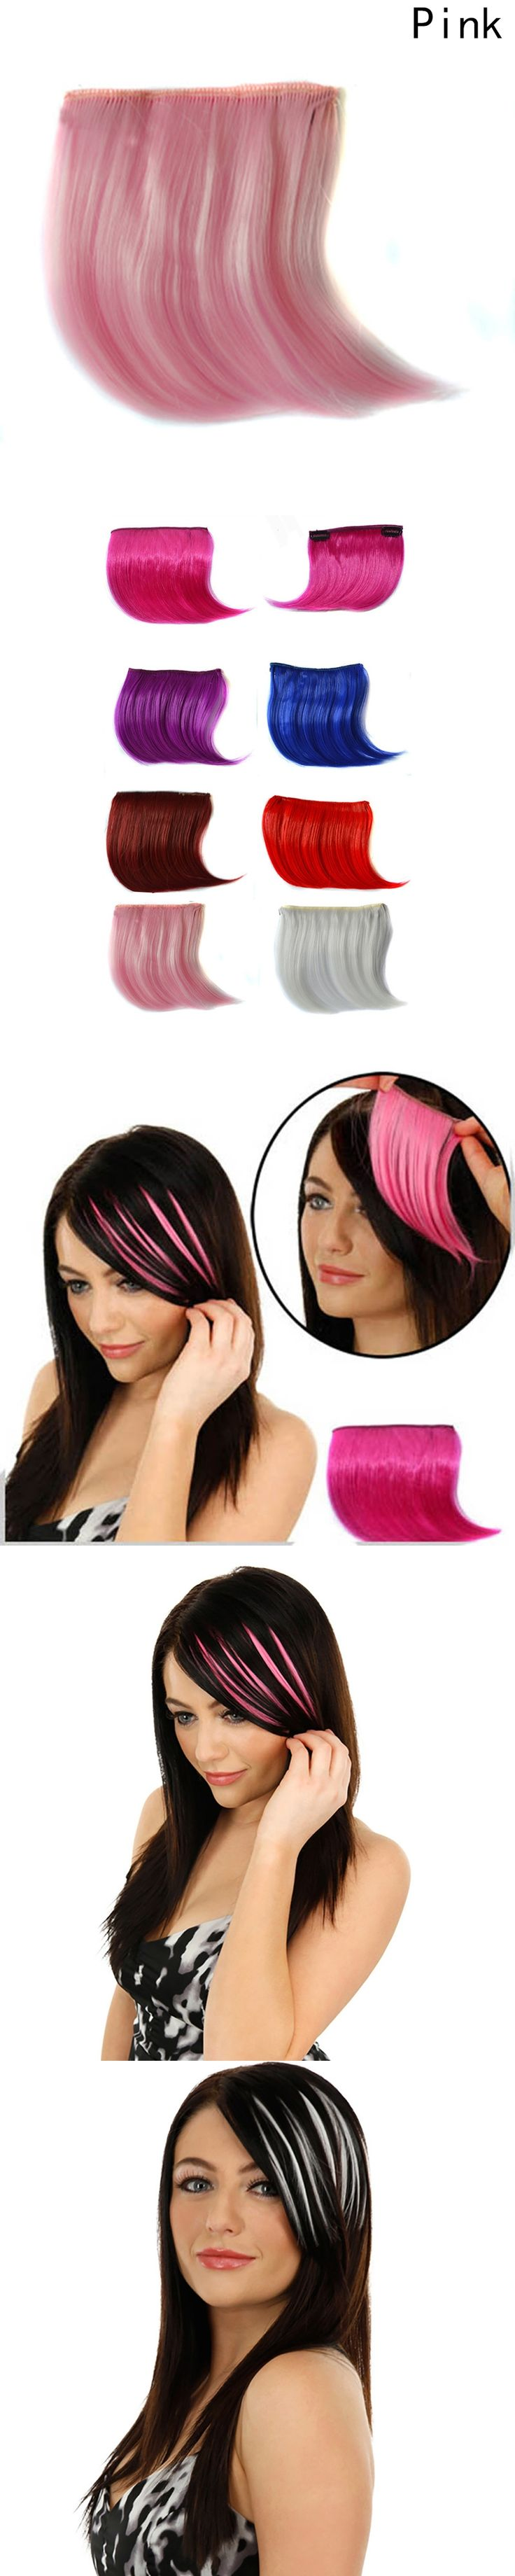 Colorful Fringe Hair Piece Fringe Clip In Hair Bangs Hairpiece Clip In Hair Extensions Fake Bangs Seamless Hair Style Accessory